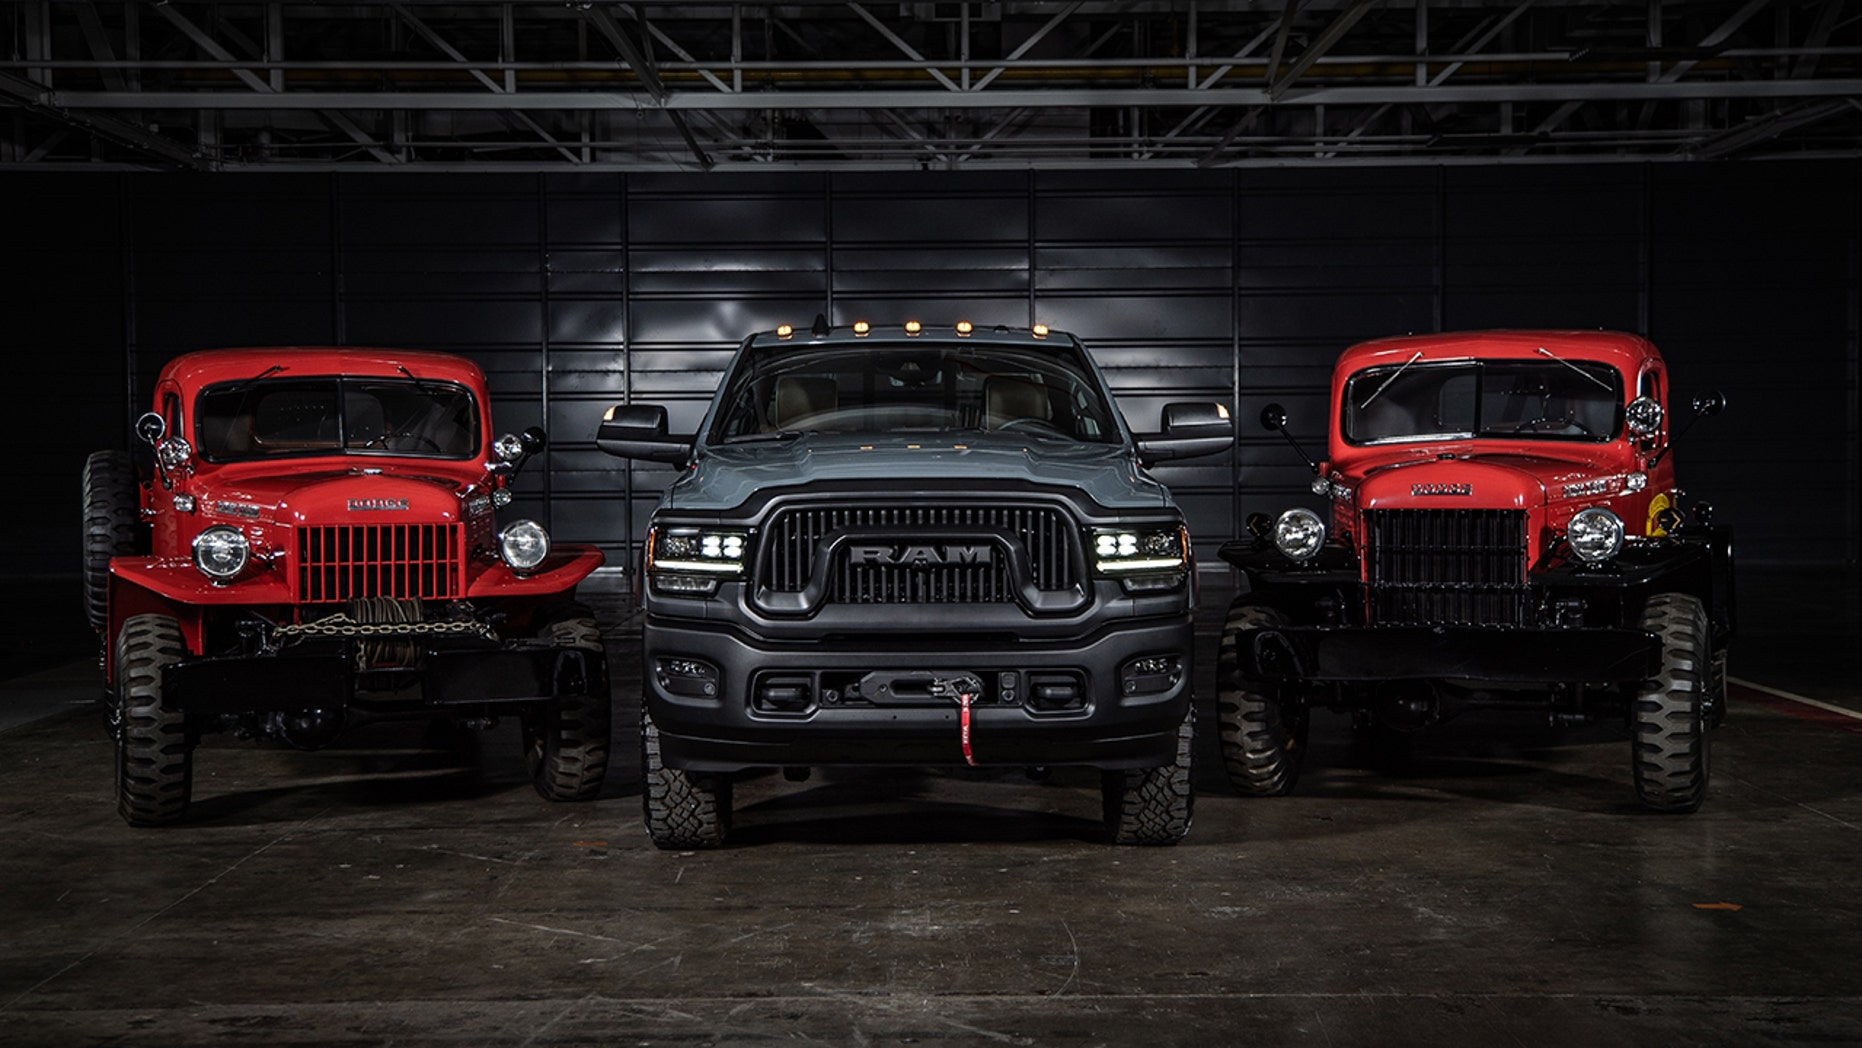 75th anniversary Ram 2500 Power Wagon